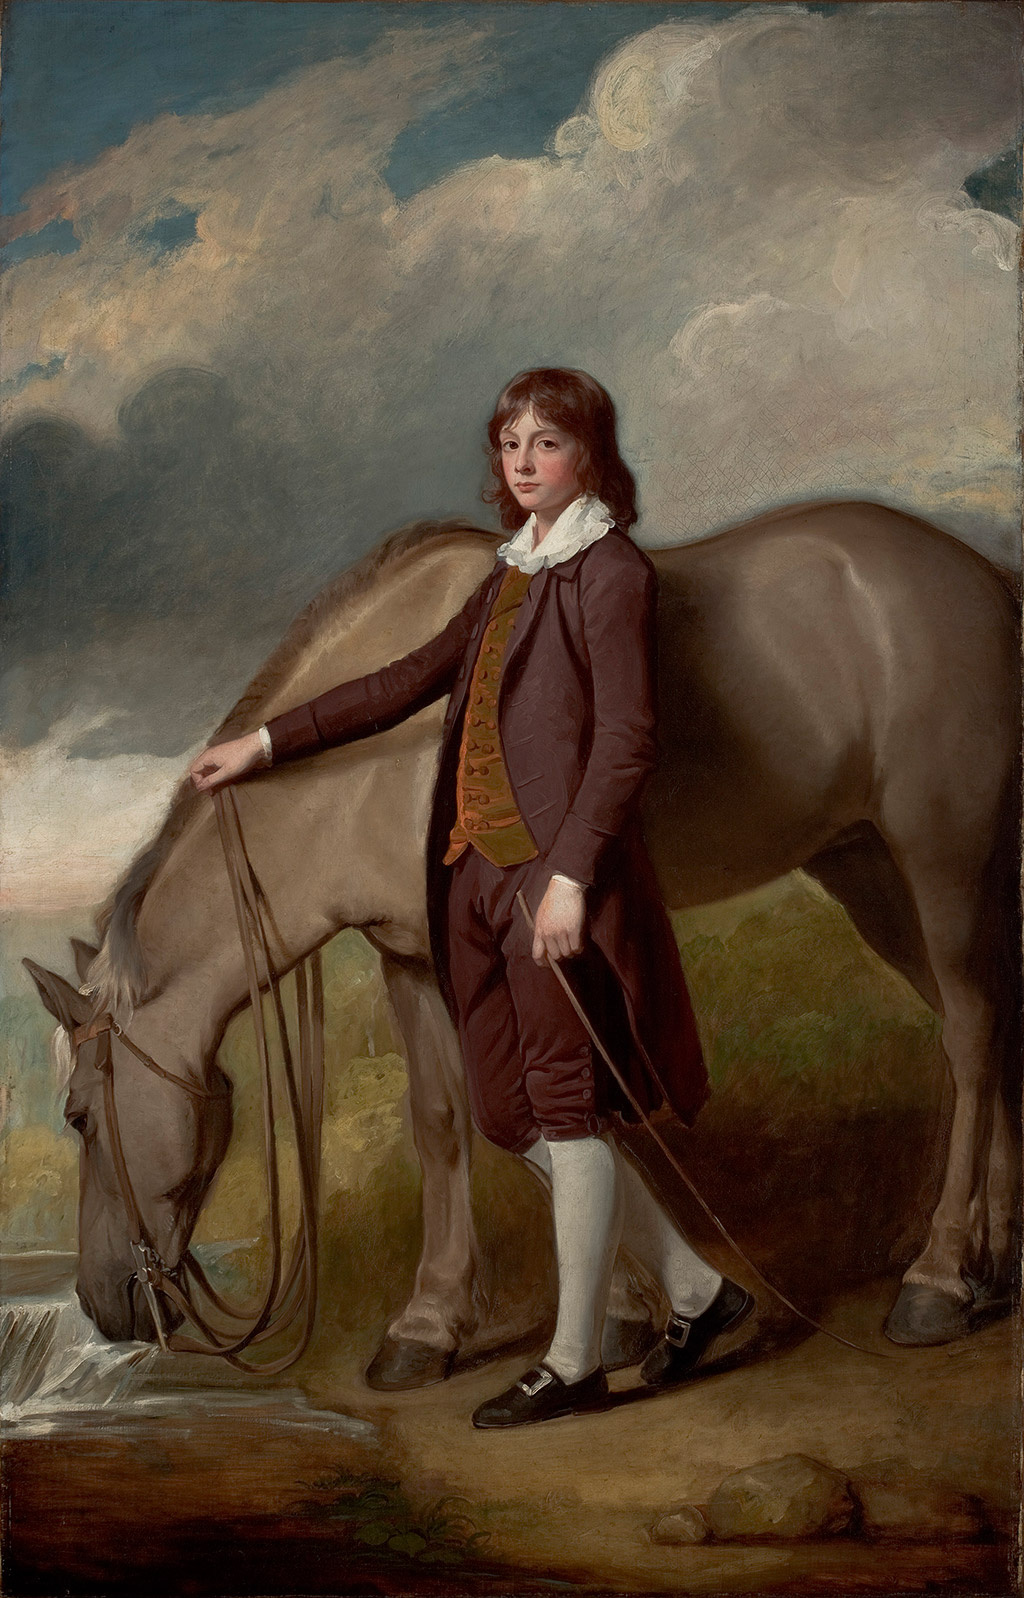 George Romney. John Walter Tempest with a horse